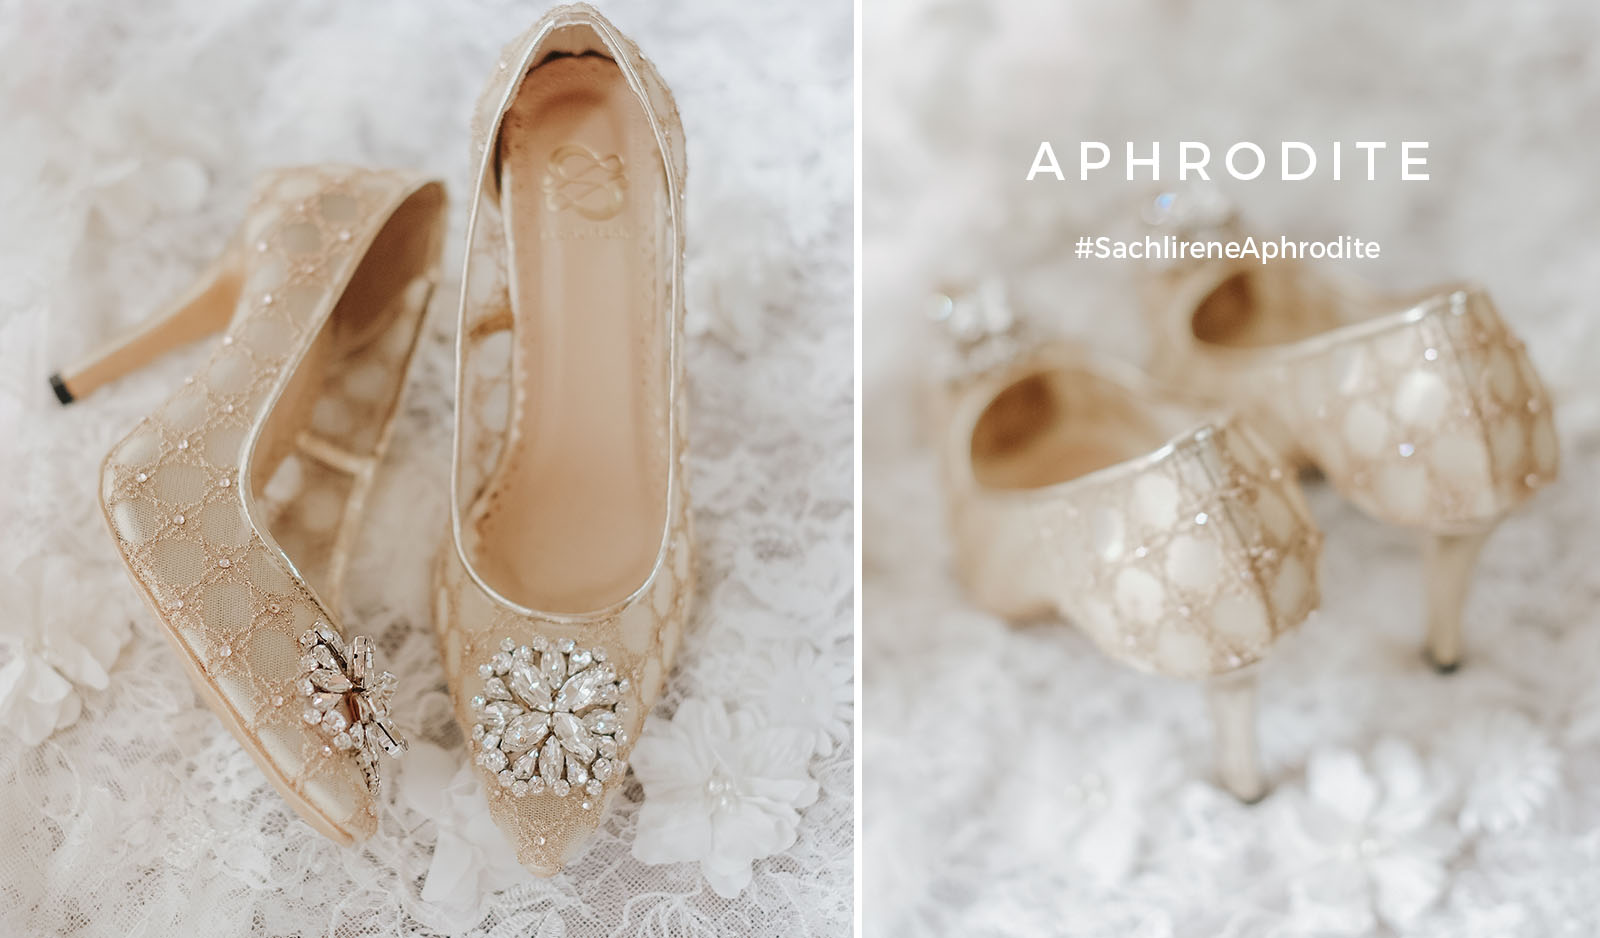 SHOP APHRODITE